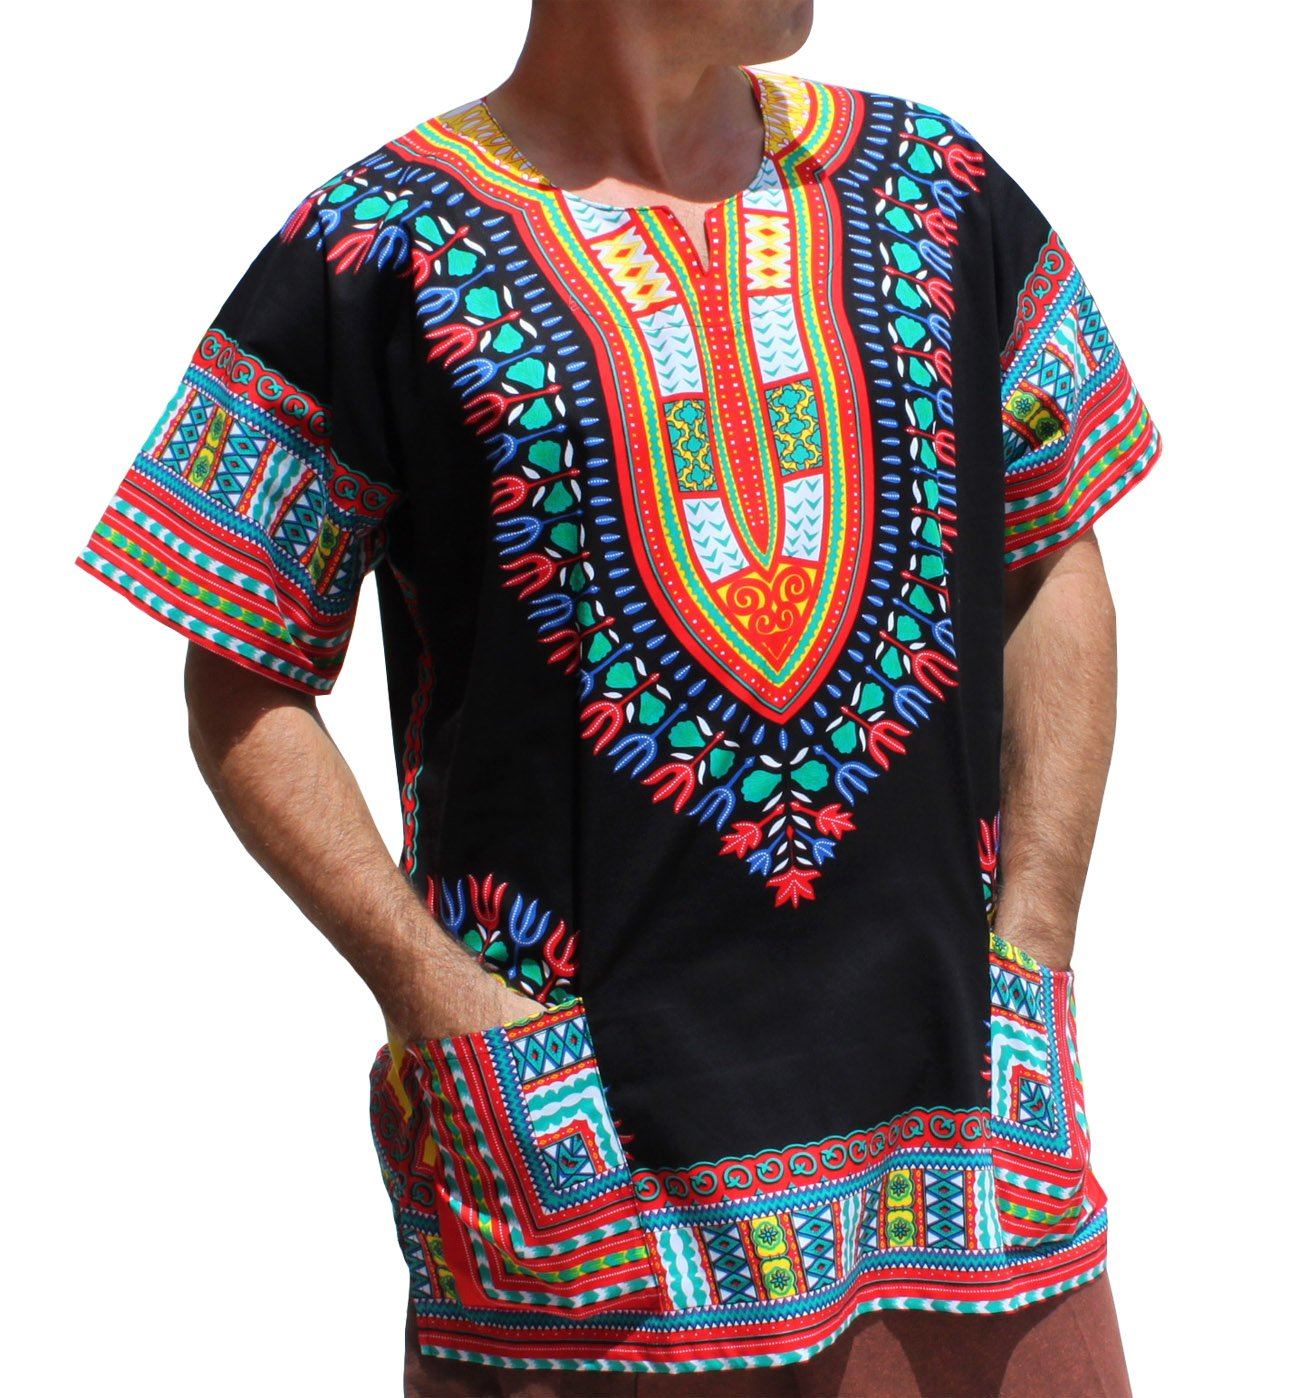 RaanPahMuang Unisex Bright Africa Black Dashiki Cotton Plus Size Shirt, XXX-Large, Red Mix